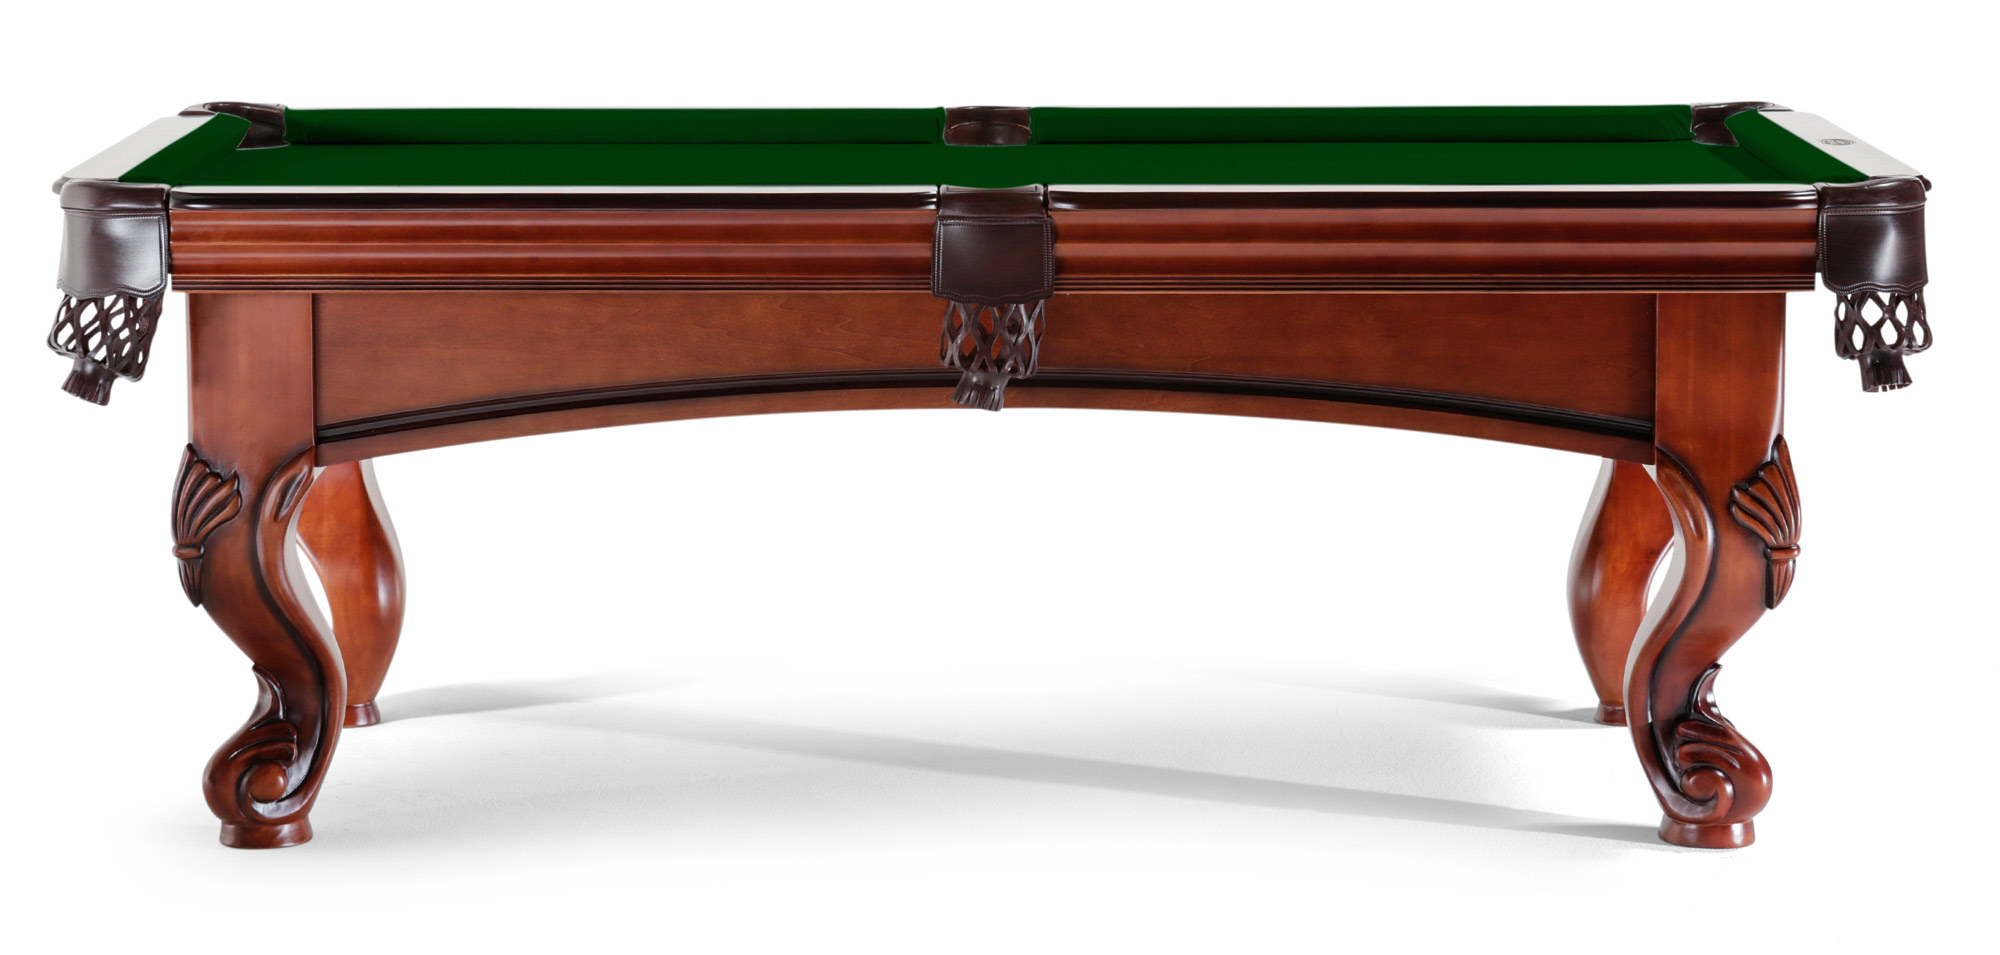 Each Table Is Constructed From 100% Solid Hardwood. Support Beams Stabilize  Each Table And Ensure A Solid, Level Playing Surface.